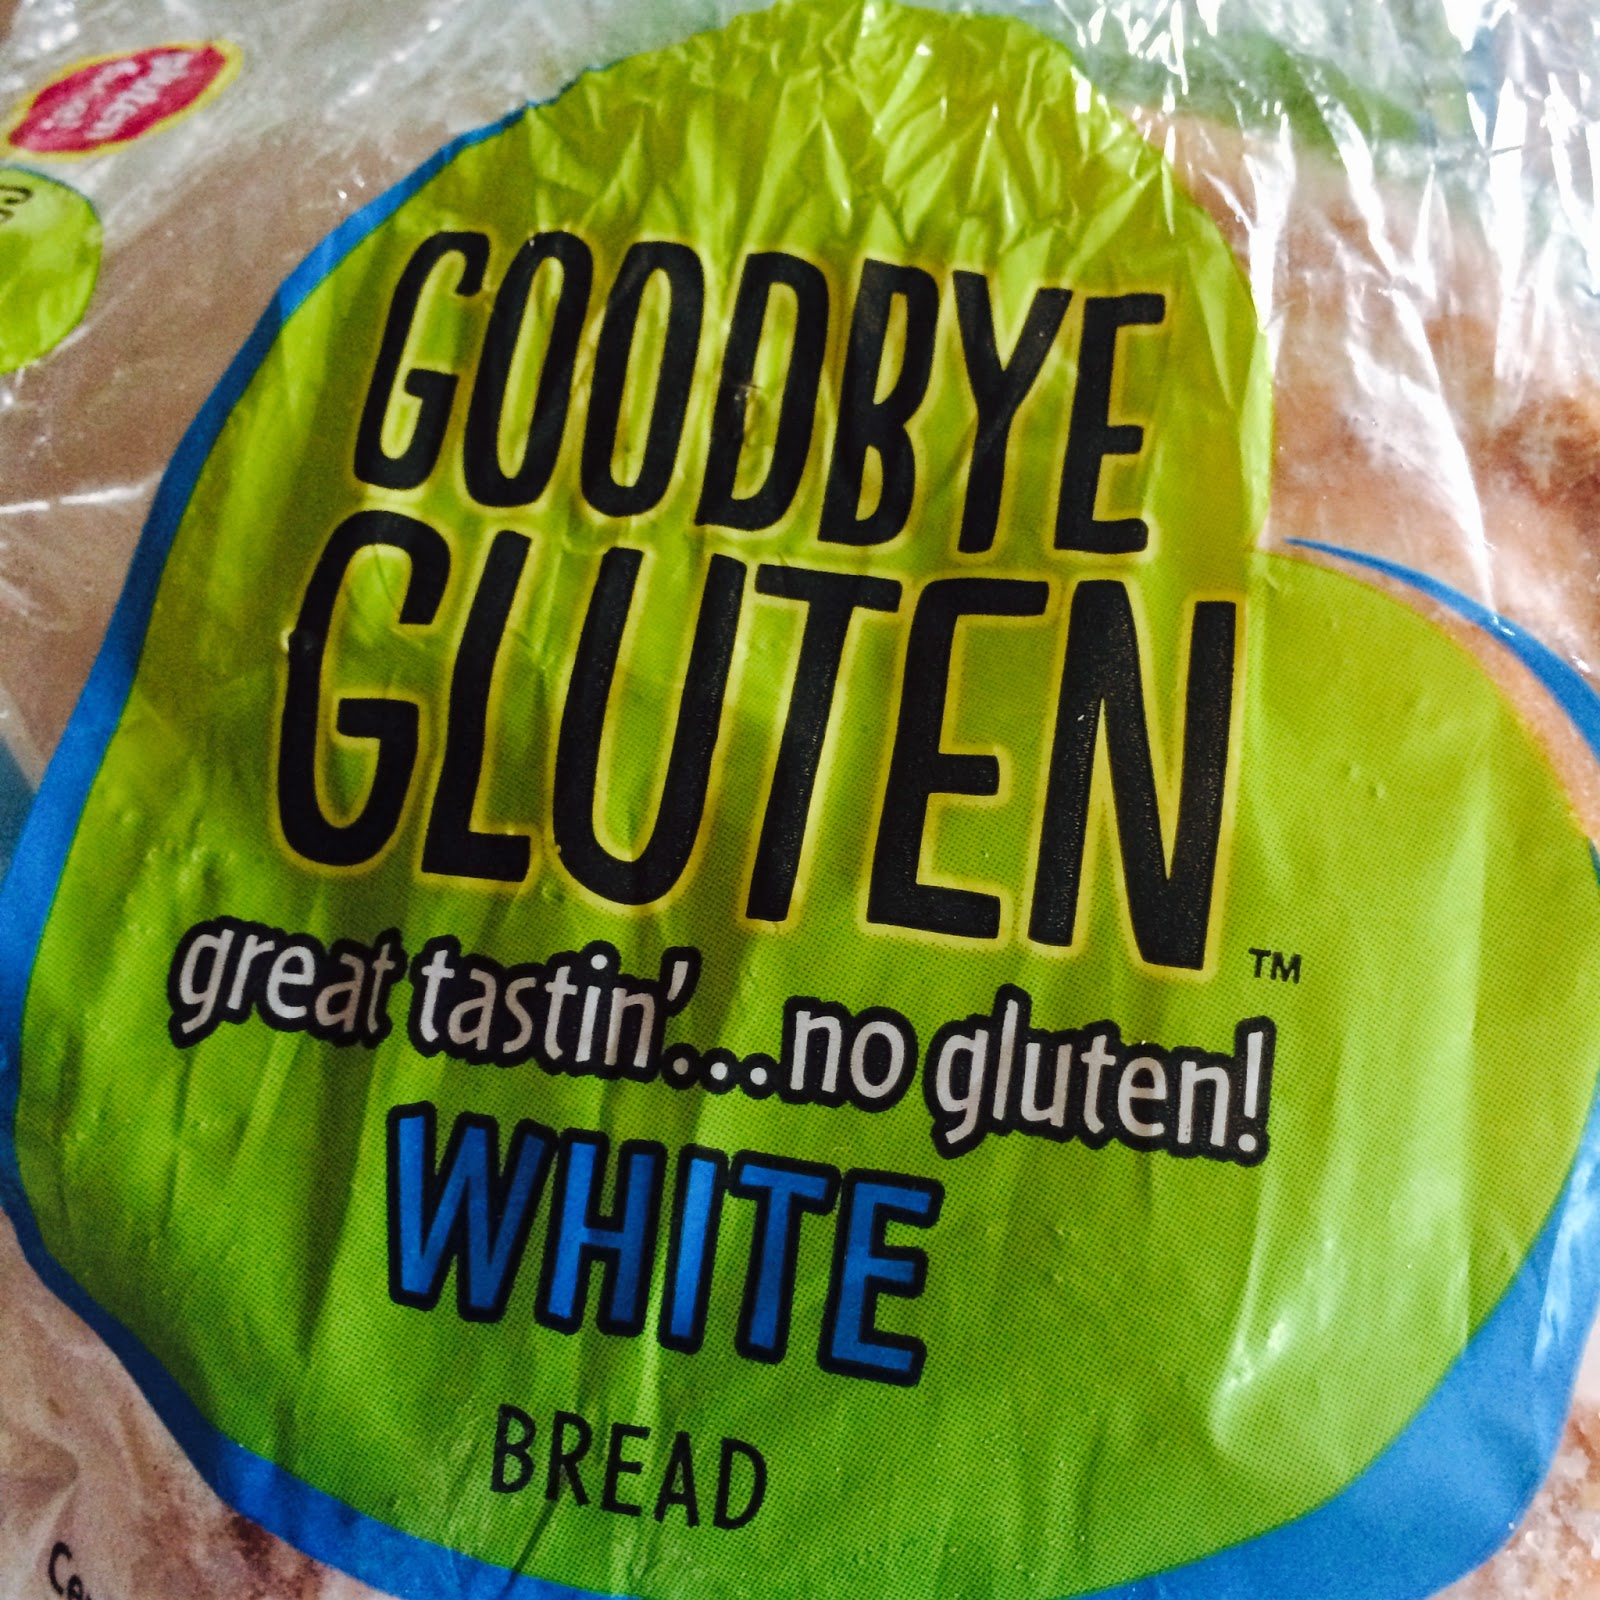 Goodbye Gluten: Gluten-free white bread